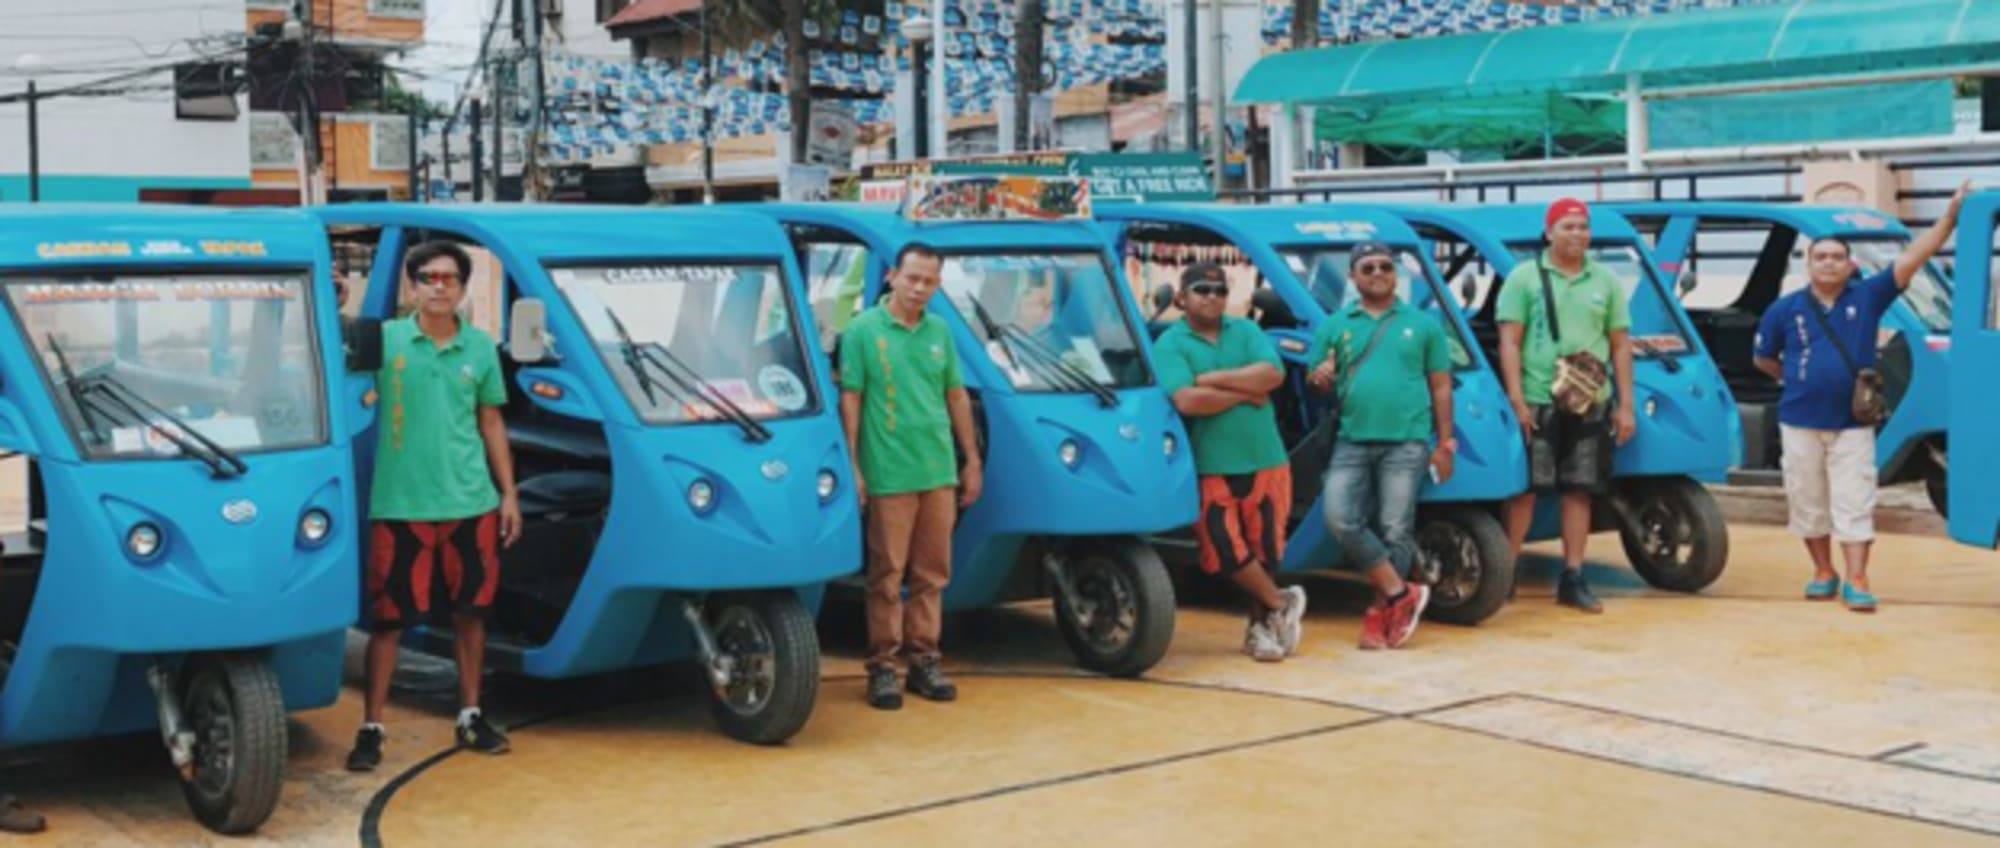 Boracay e-trike supplier urged to get proper accreditation